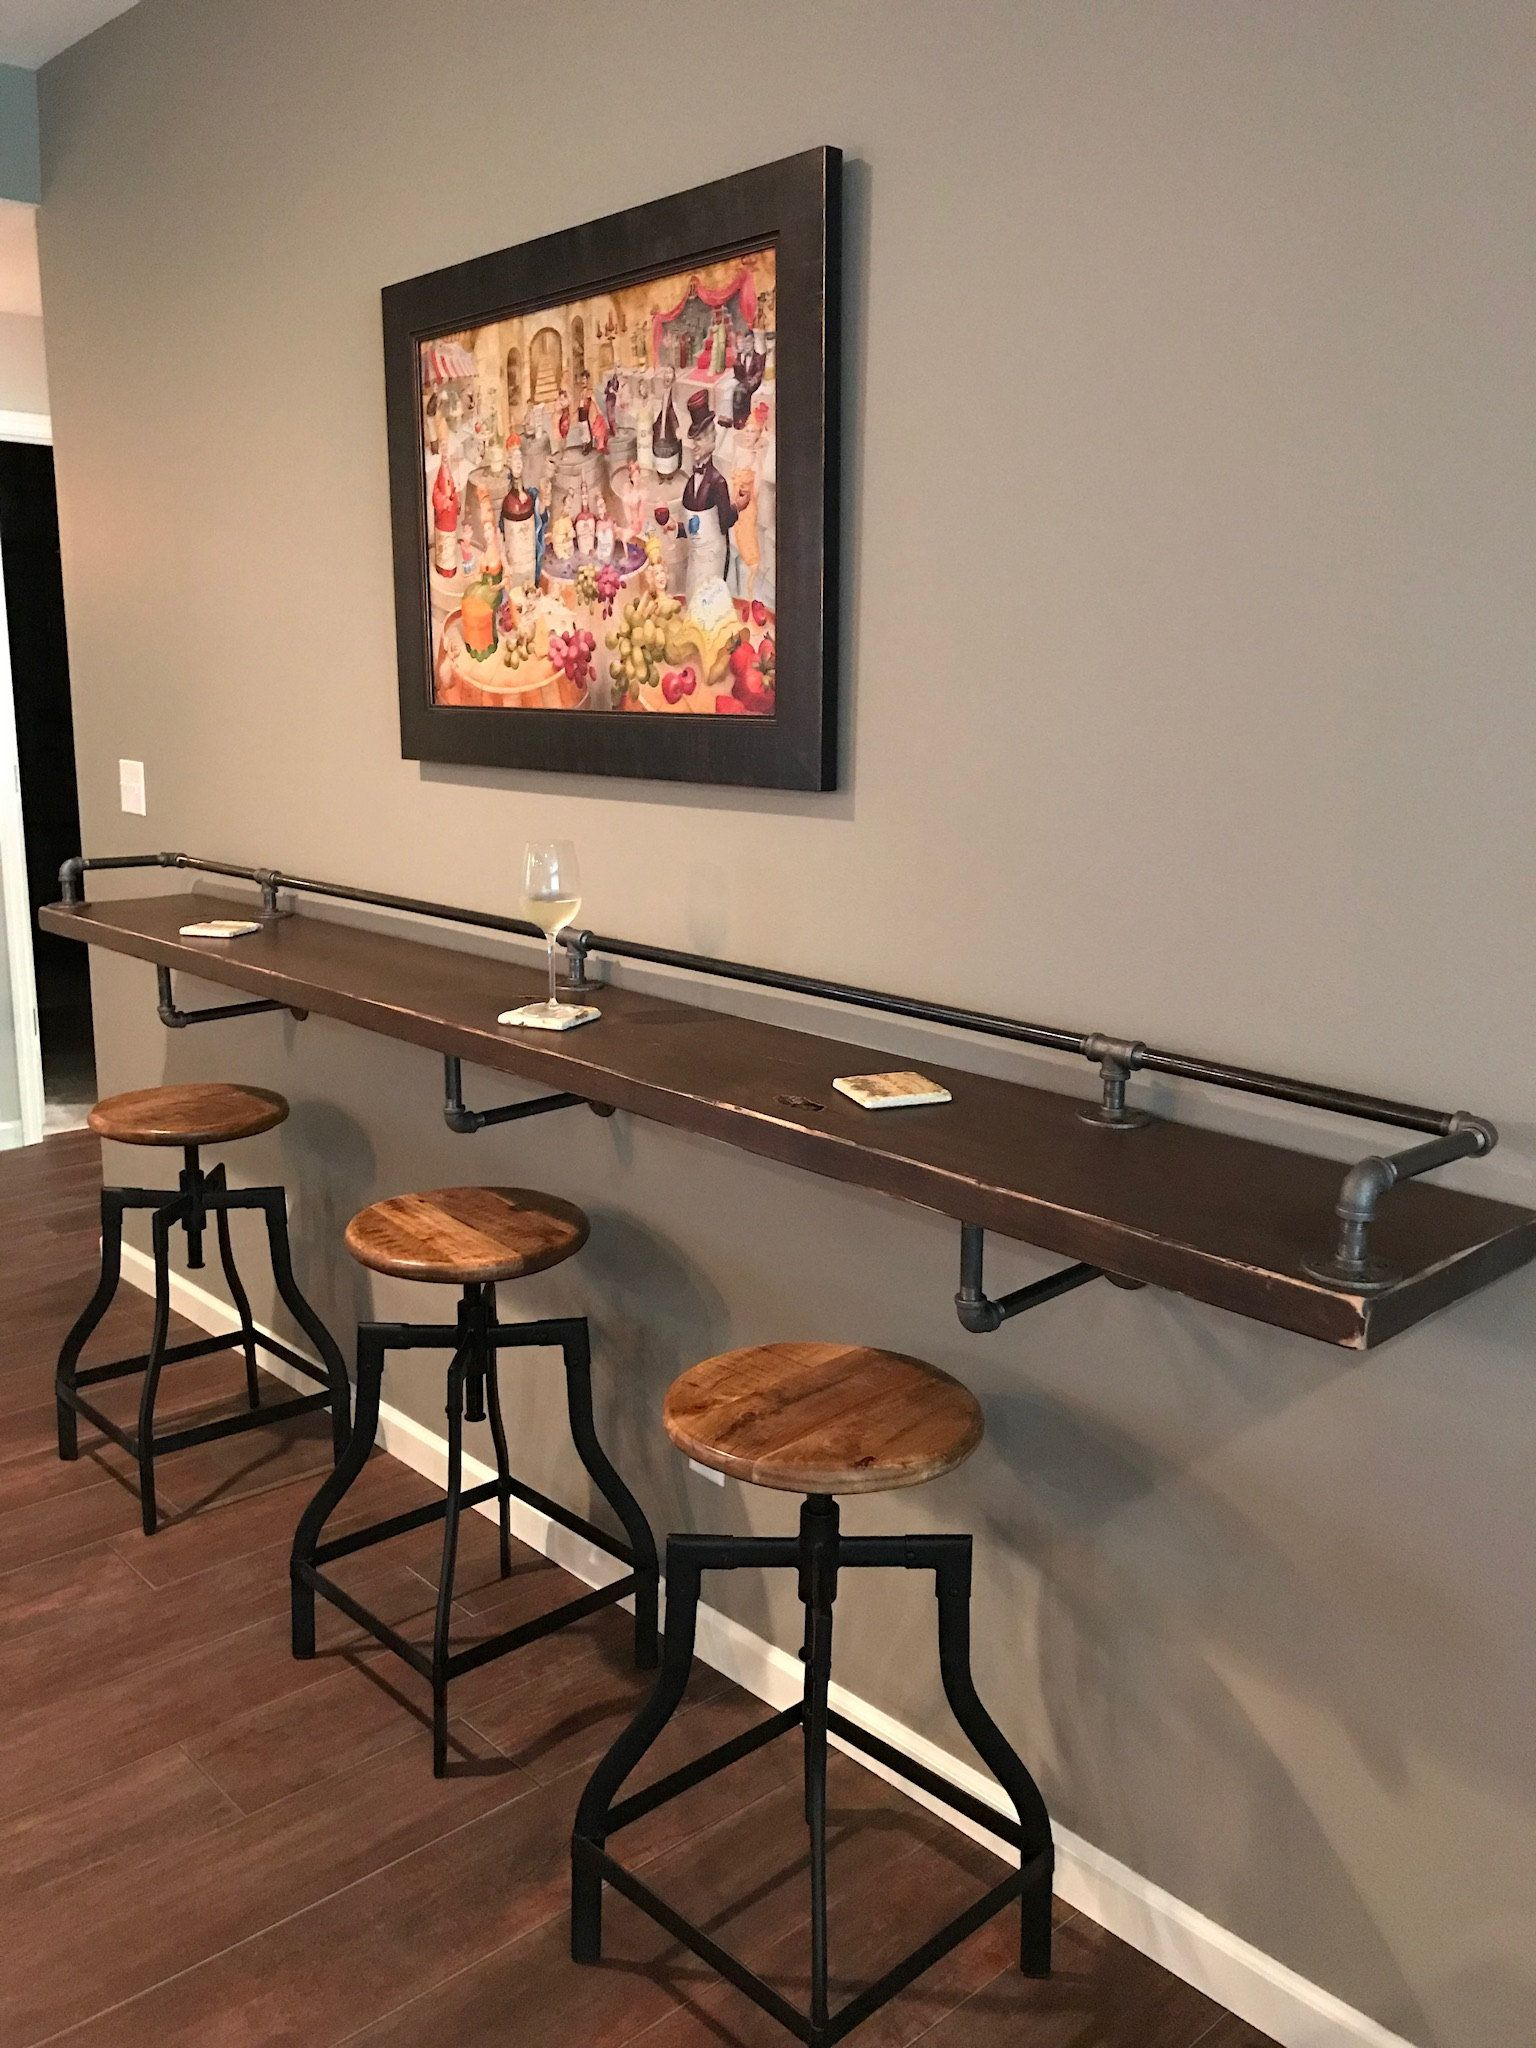 Industrial black pipe drink rail with shelf support brackets diy parts kit by pipelinedesignstudio on etsy also rustic decor and design ideas interior rh pinterest